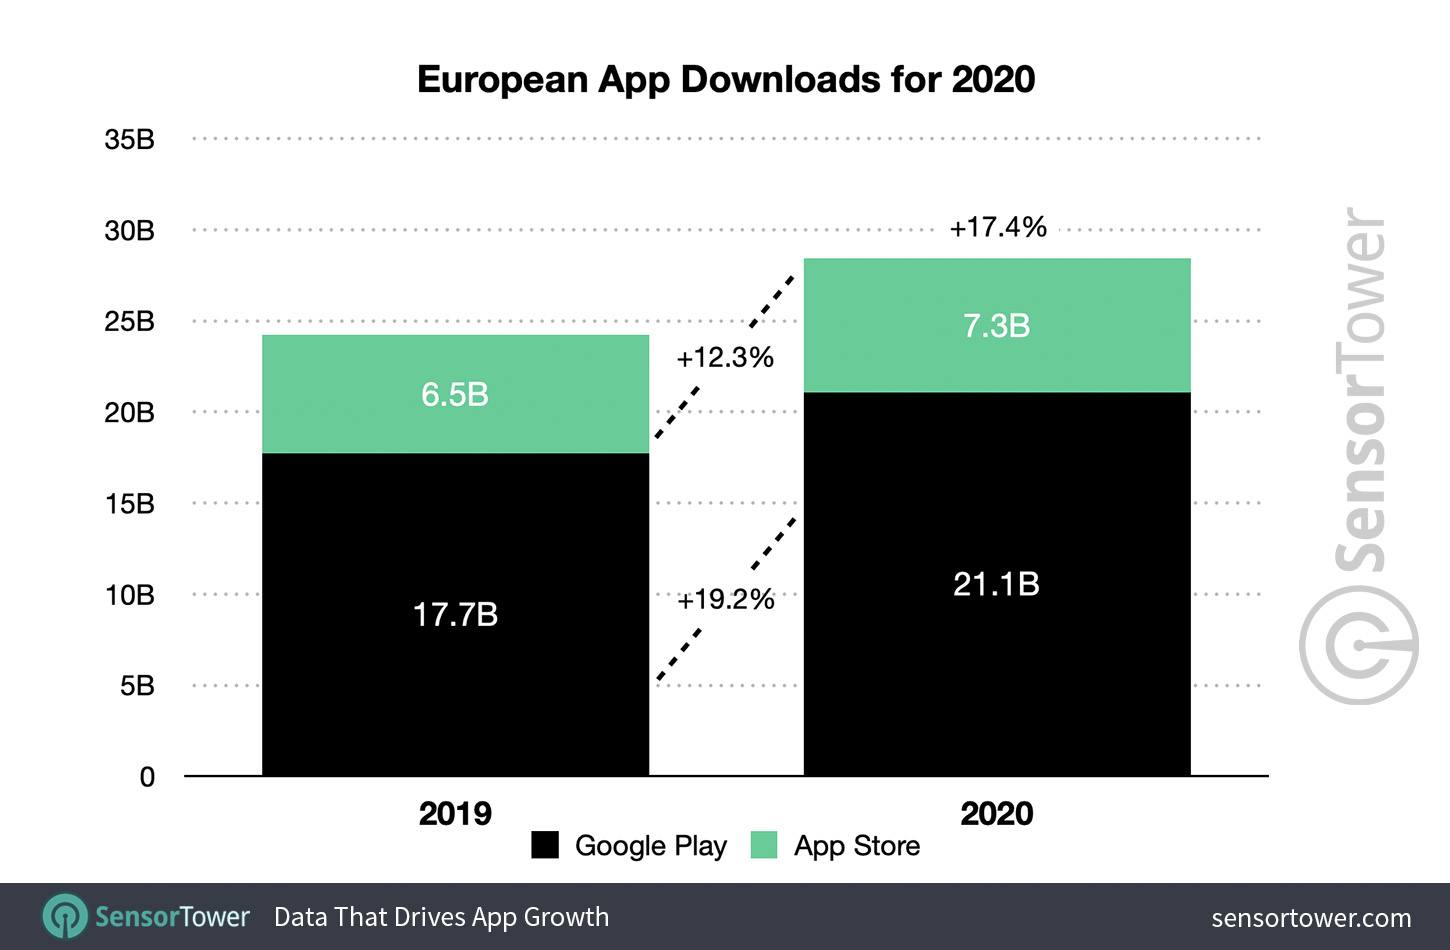 European App Downloads for 2020